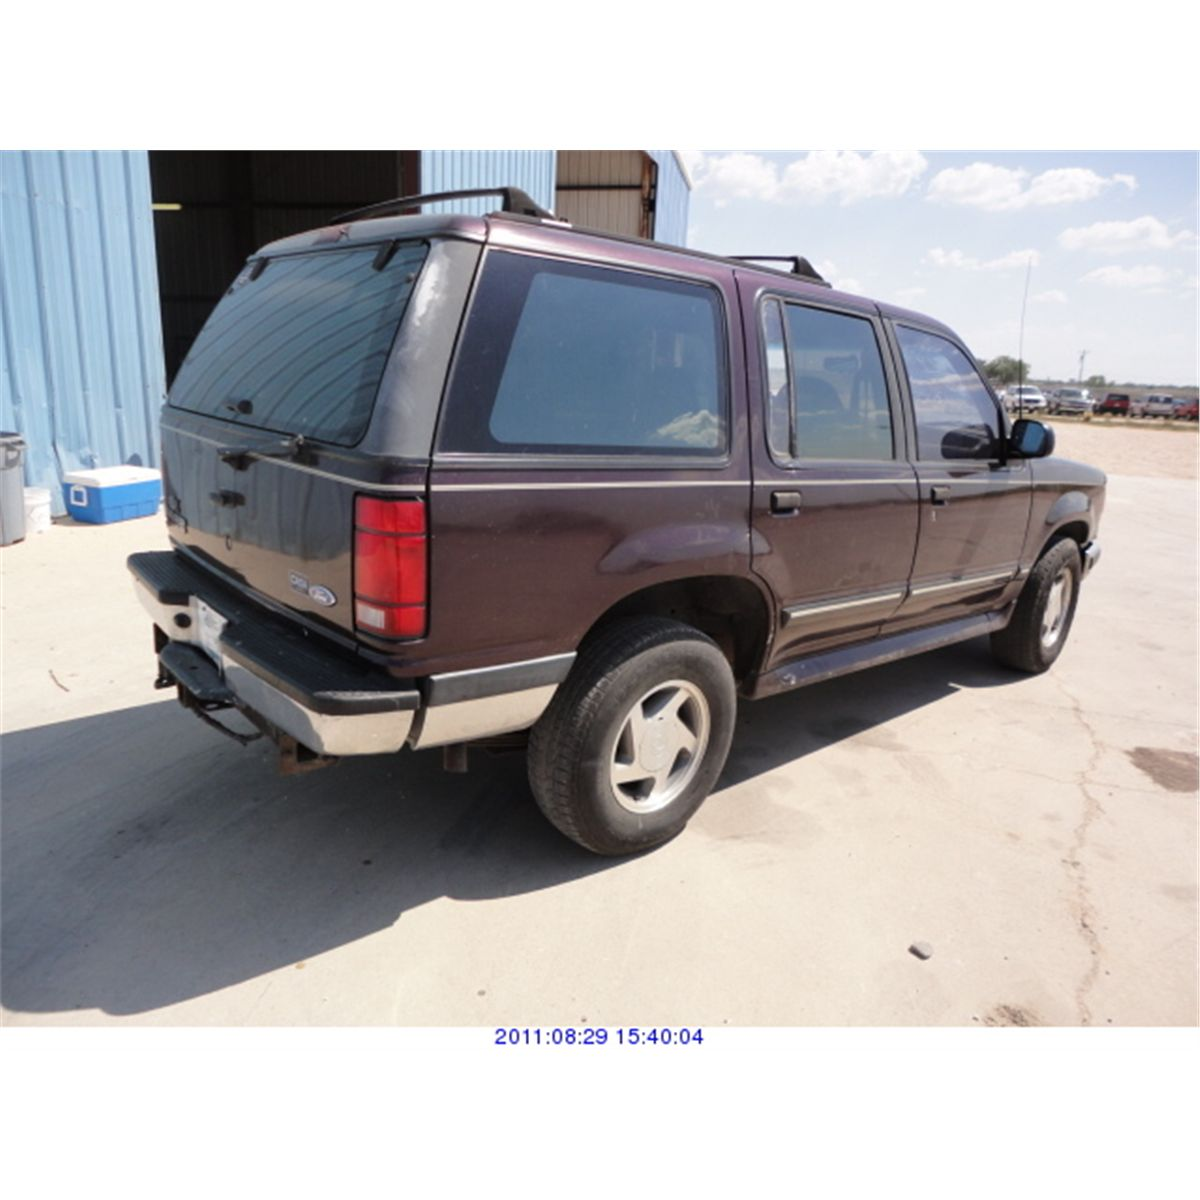 hight resolution of  image 4 1994 ford explorer